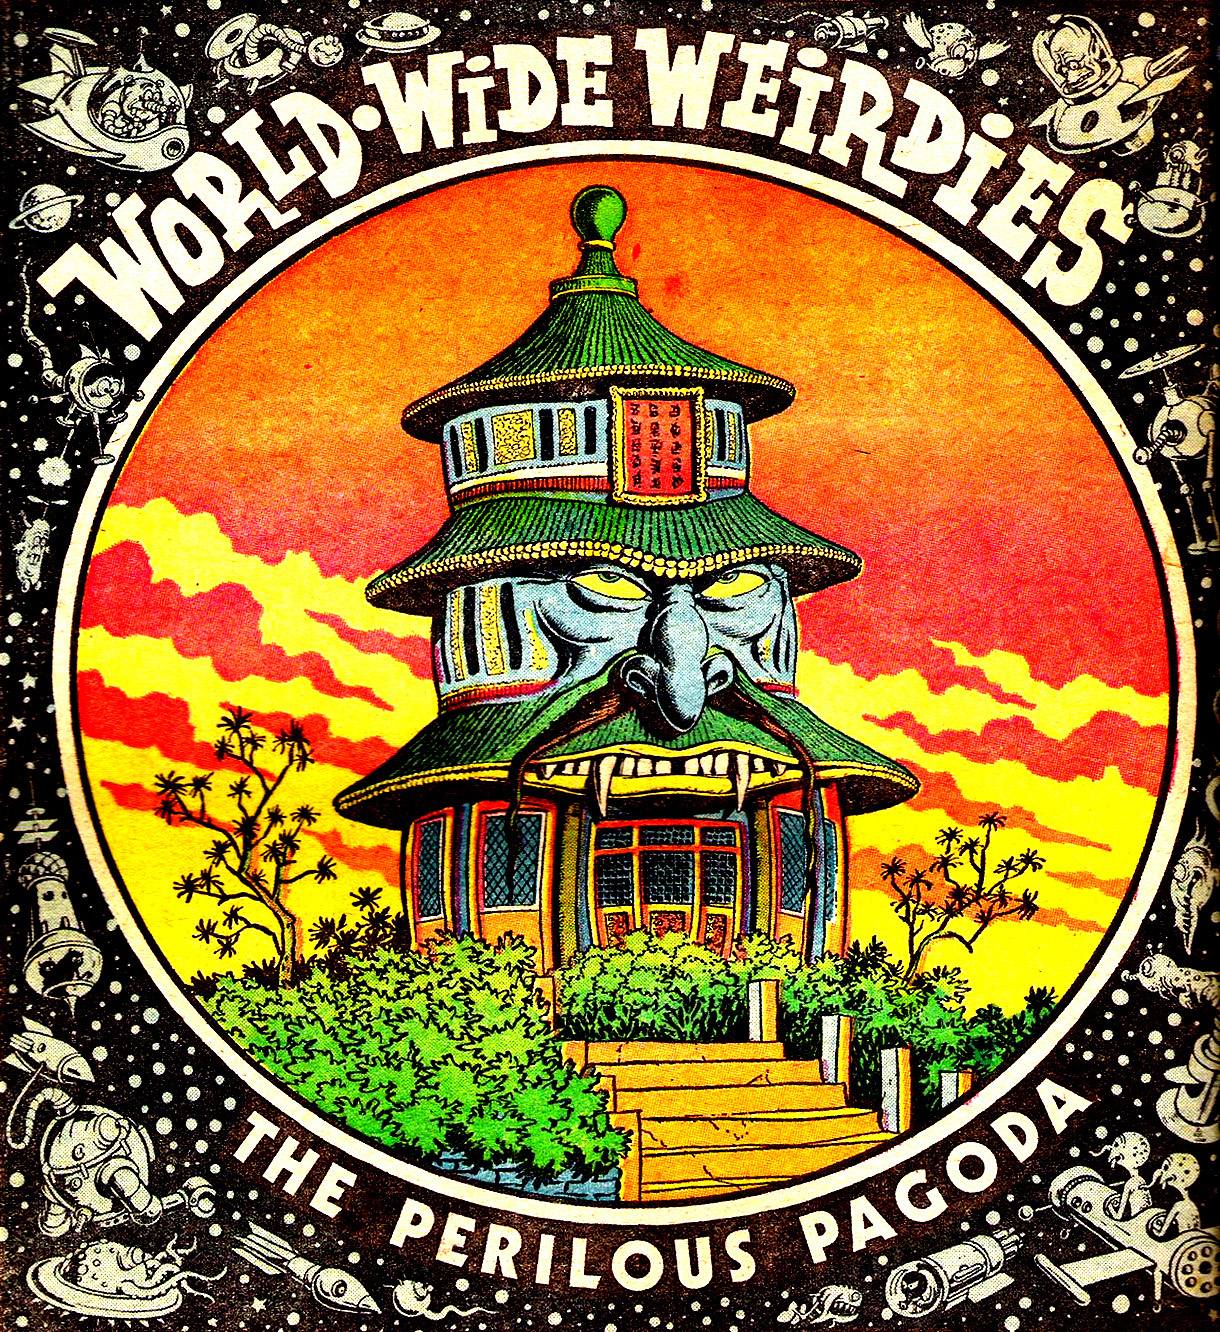 Ken Reid - World Wide Weirdies 77